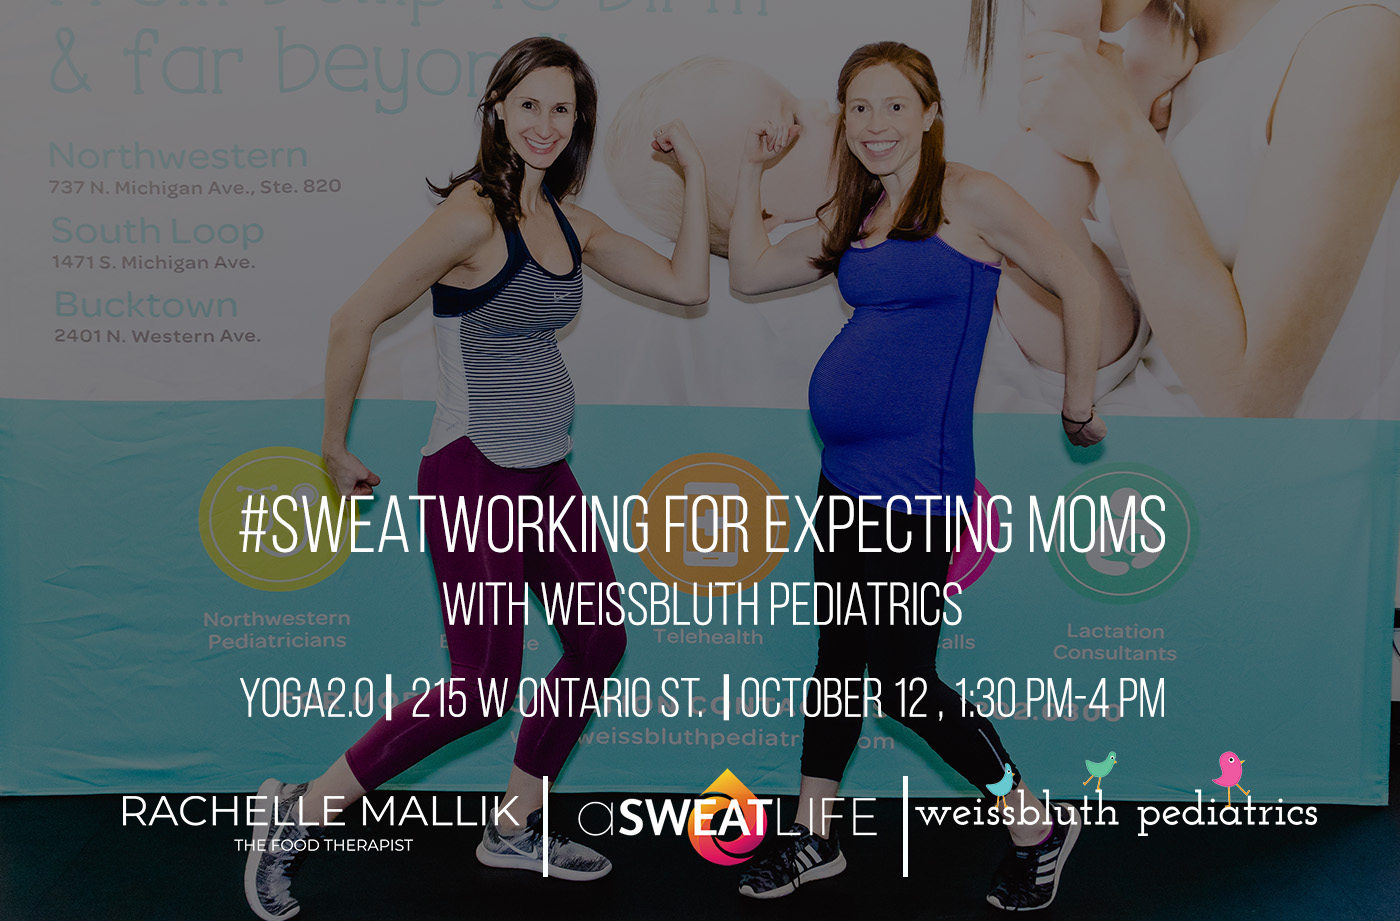 sweatworking for expecting moms with weissbluth